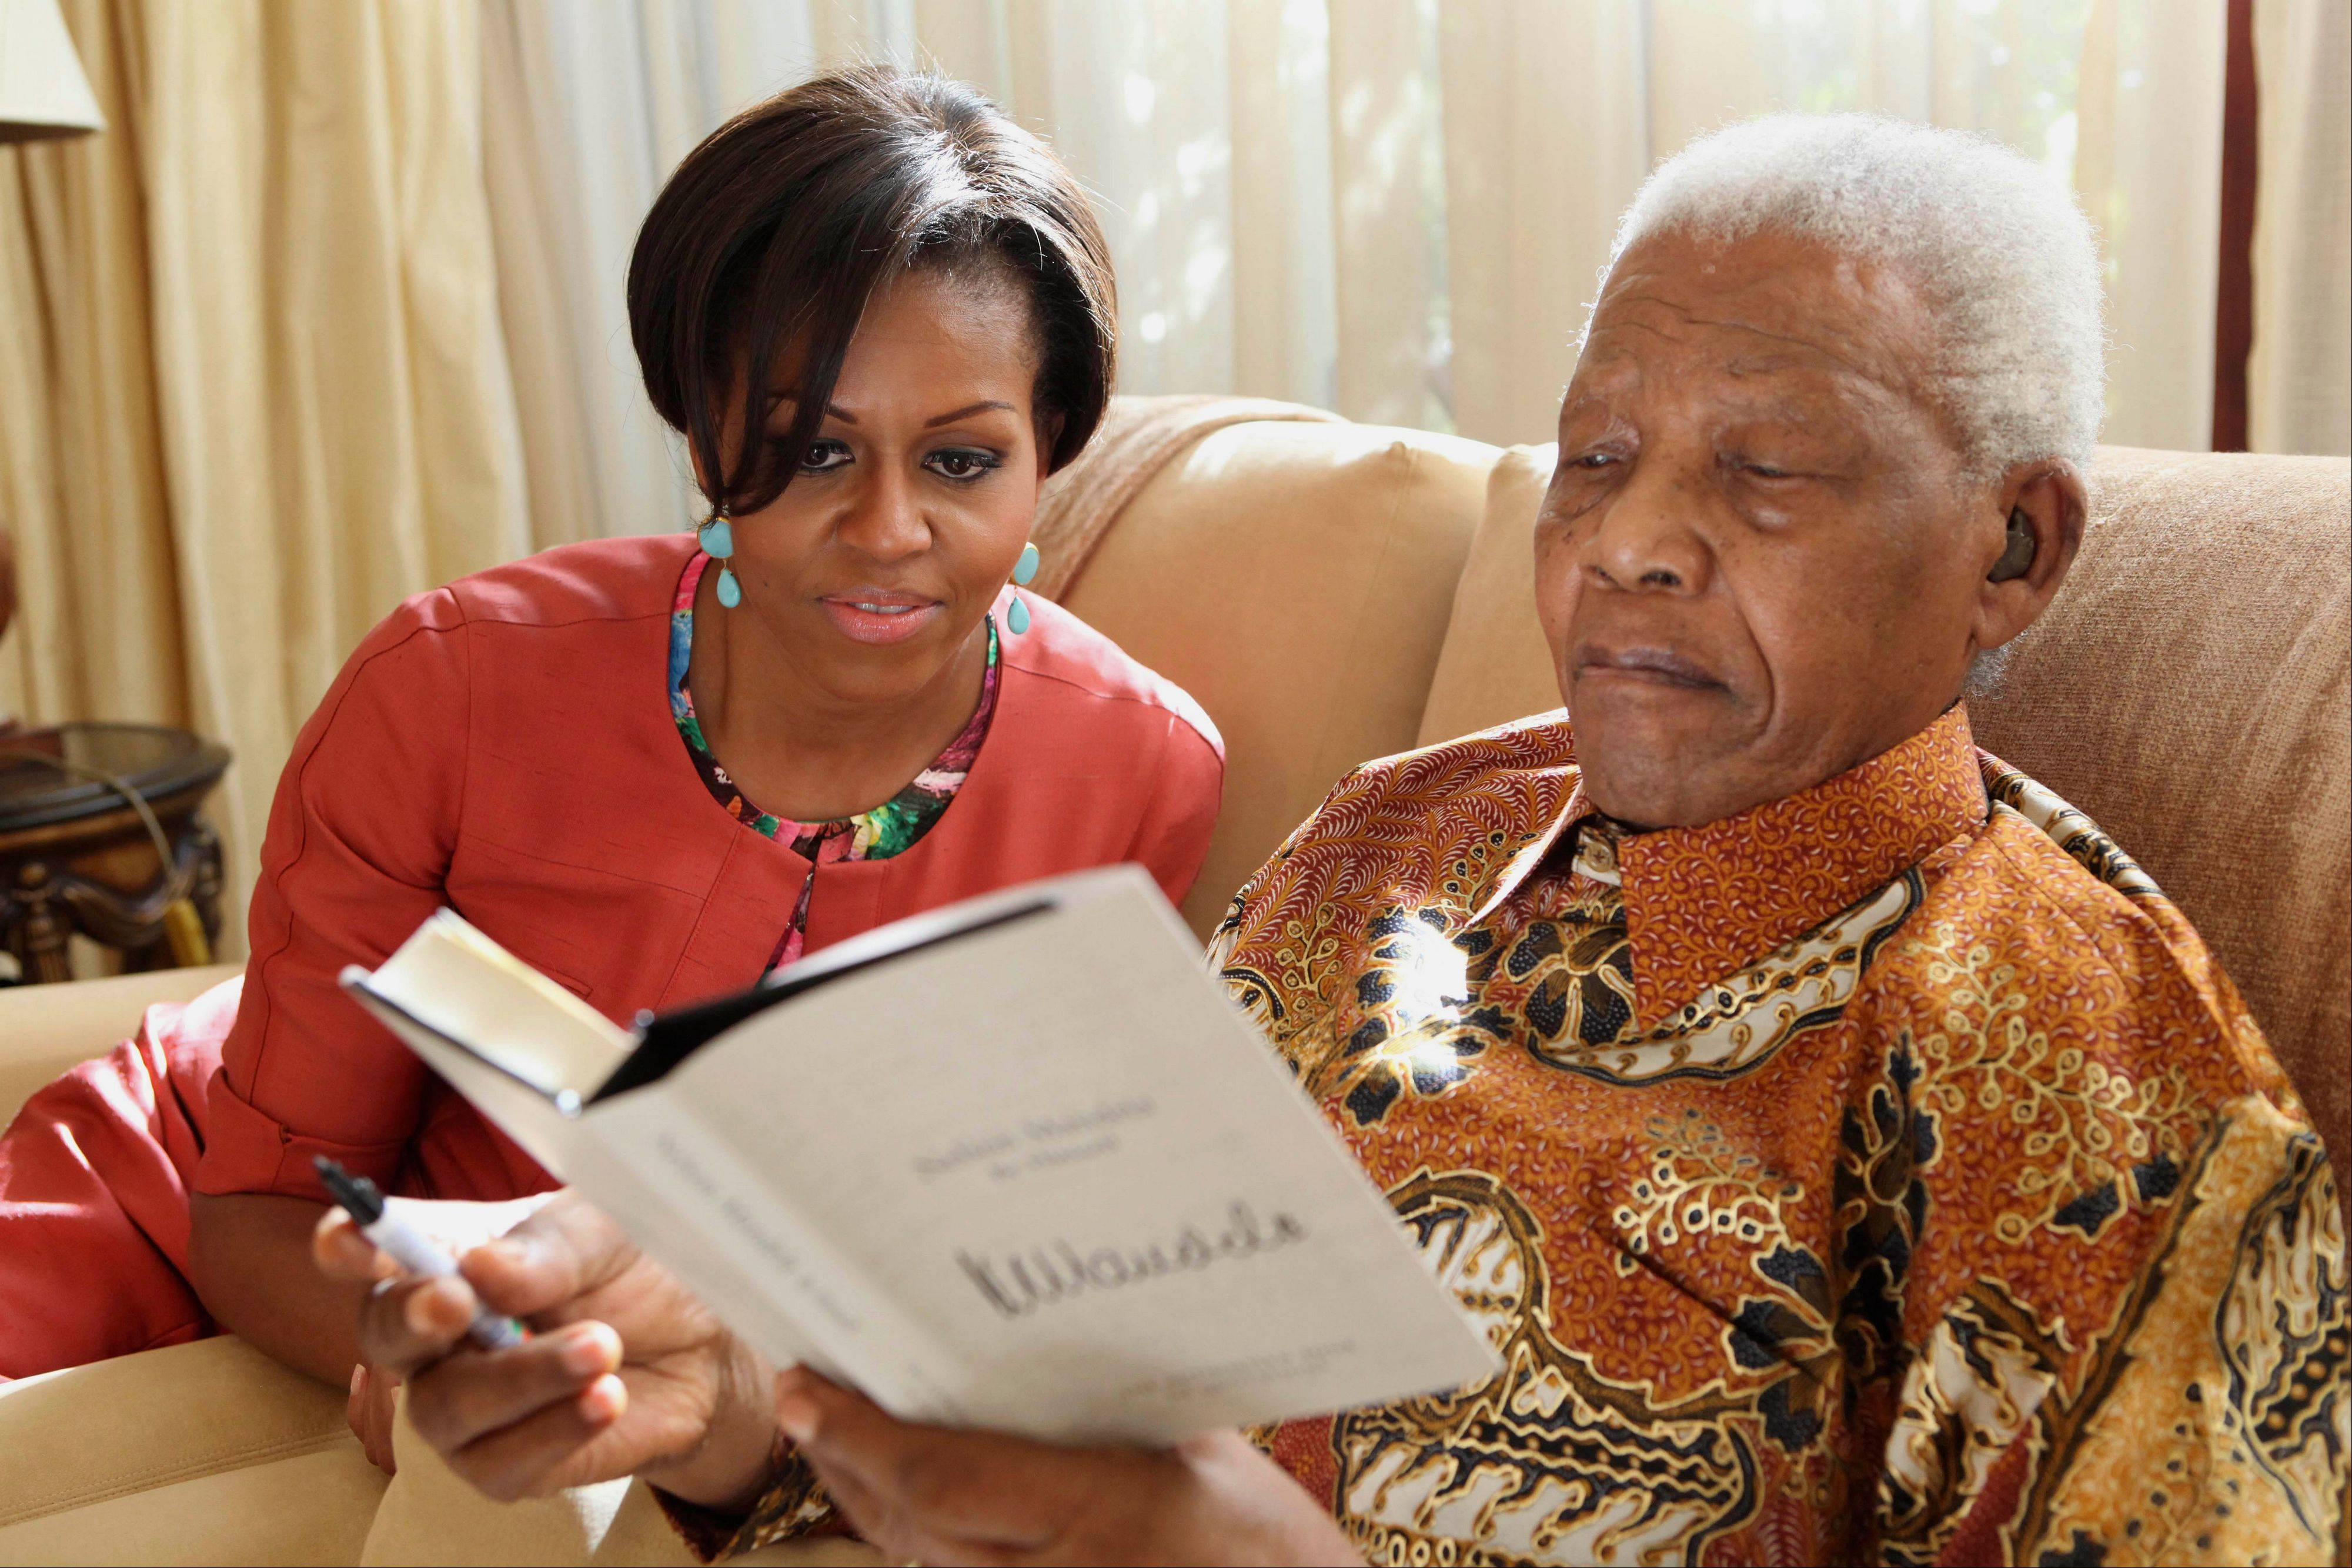 In this photo provided by the Nelson Mandela Foundation on Tuesday, June 21, 2011, US First Lady Michelle Obama, left, with former South African President Nelson Mandela, at this home, in Houghton, South Africa.